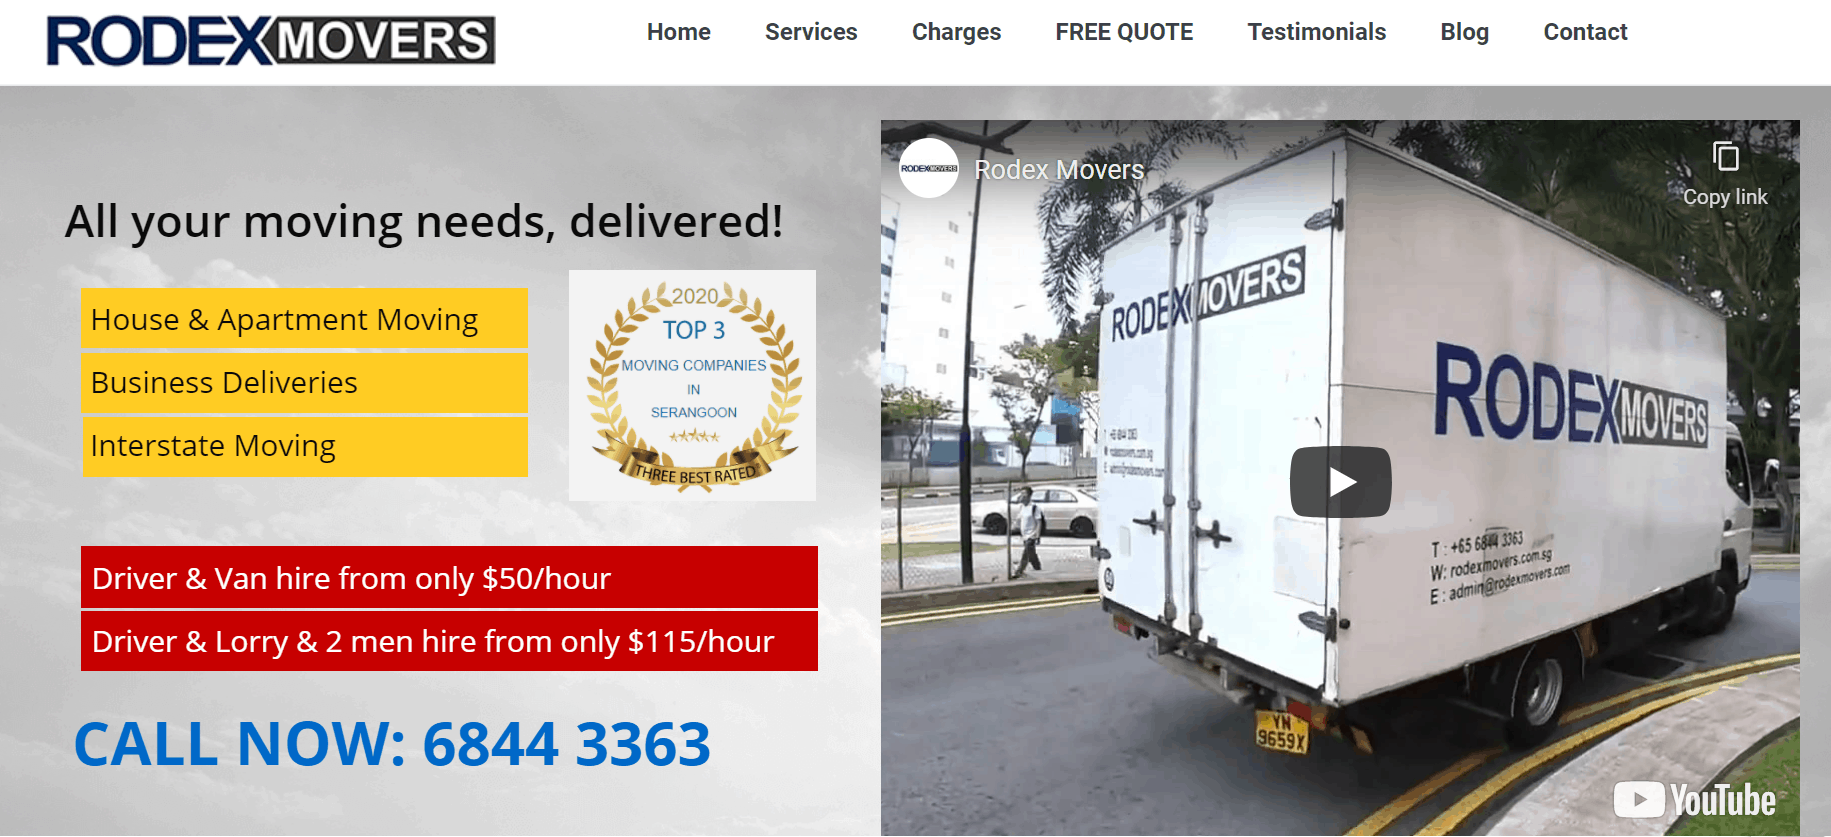 Rodex Movers is The Best Movers in Singapore, Cheapest Storage in Singapore. - All Storage and Moving Needs